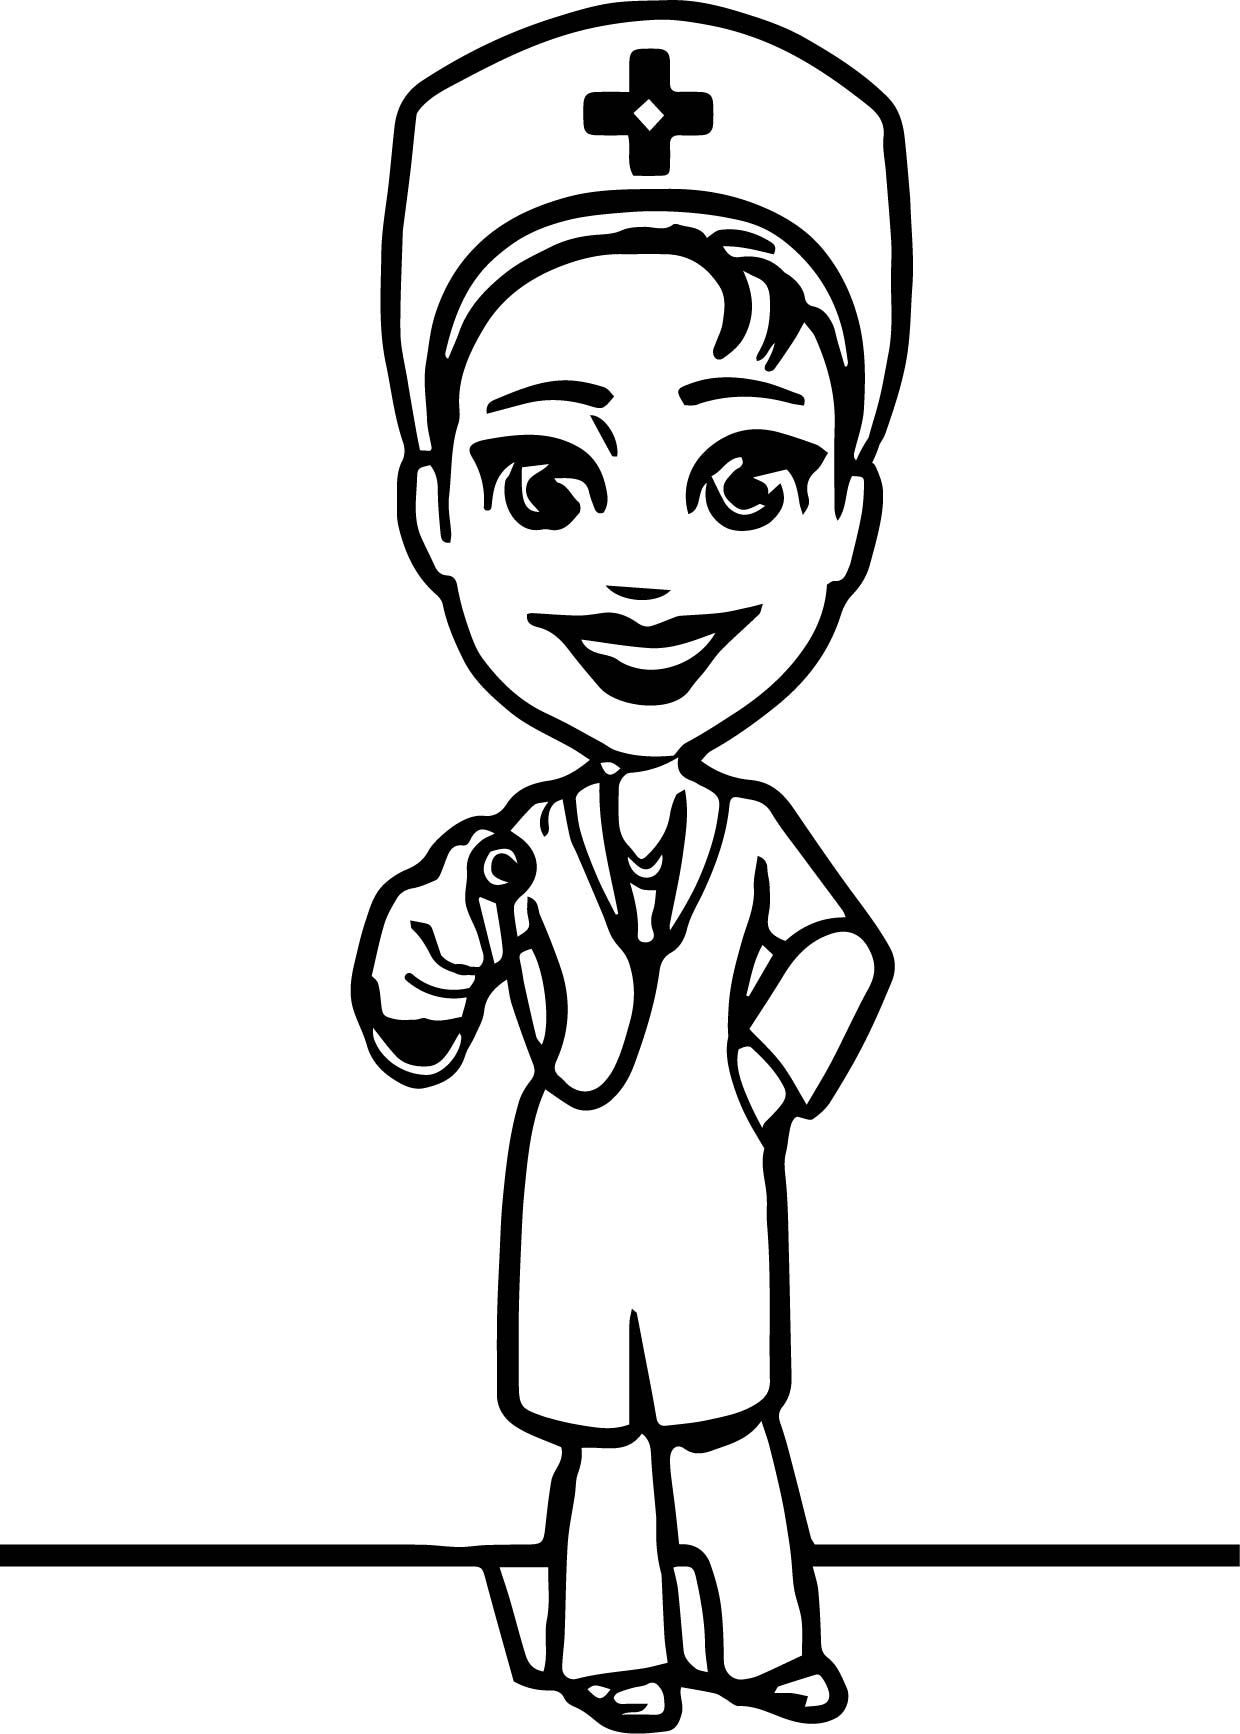 Doctor Coloring Sheet Printable Doctor Day Cartoon Coloring Pages Coloring Pages Cartoon Coloring Pages Printable Coloring Pages